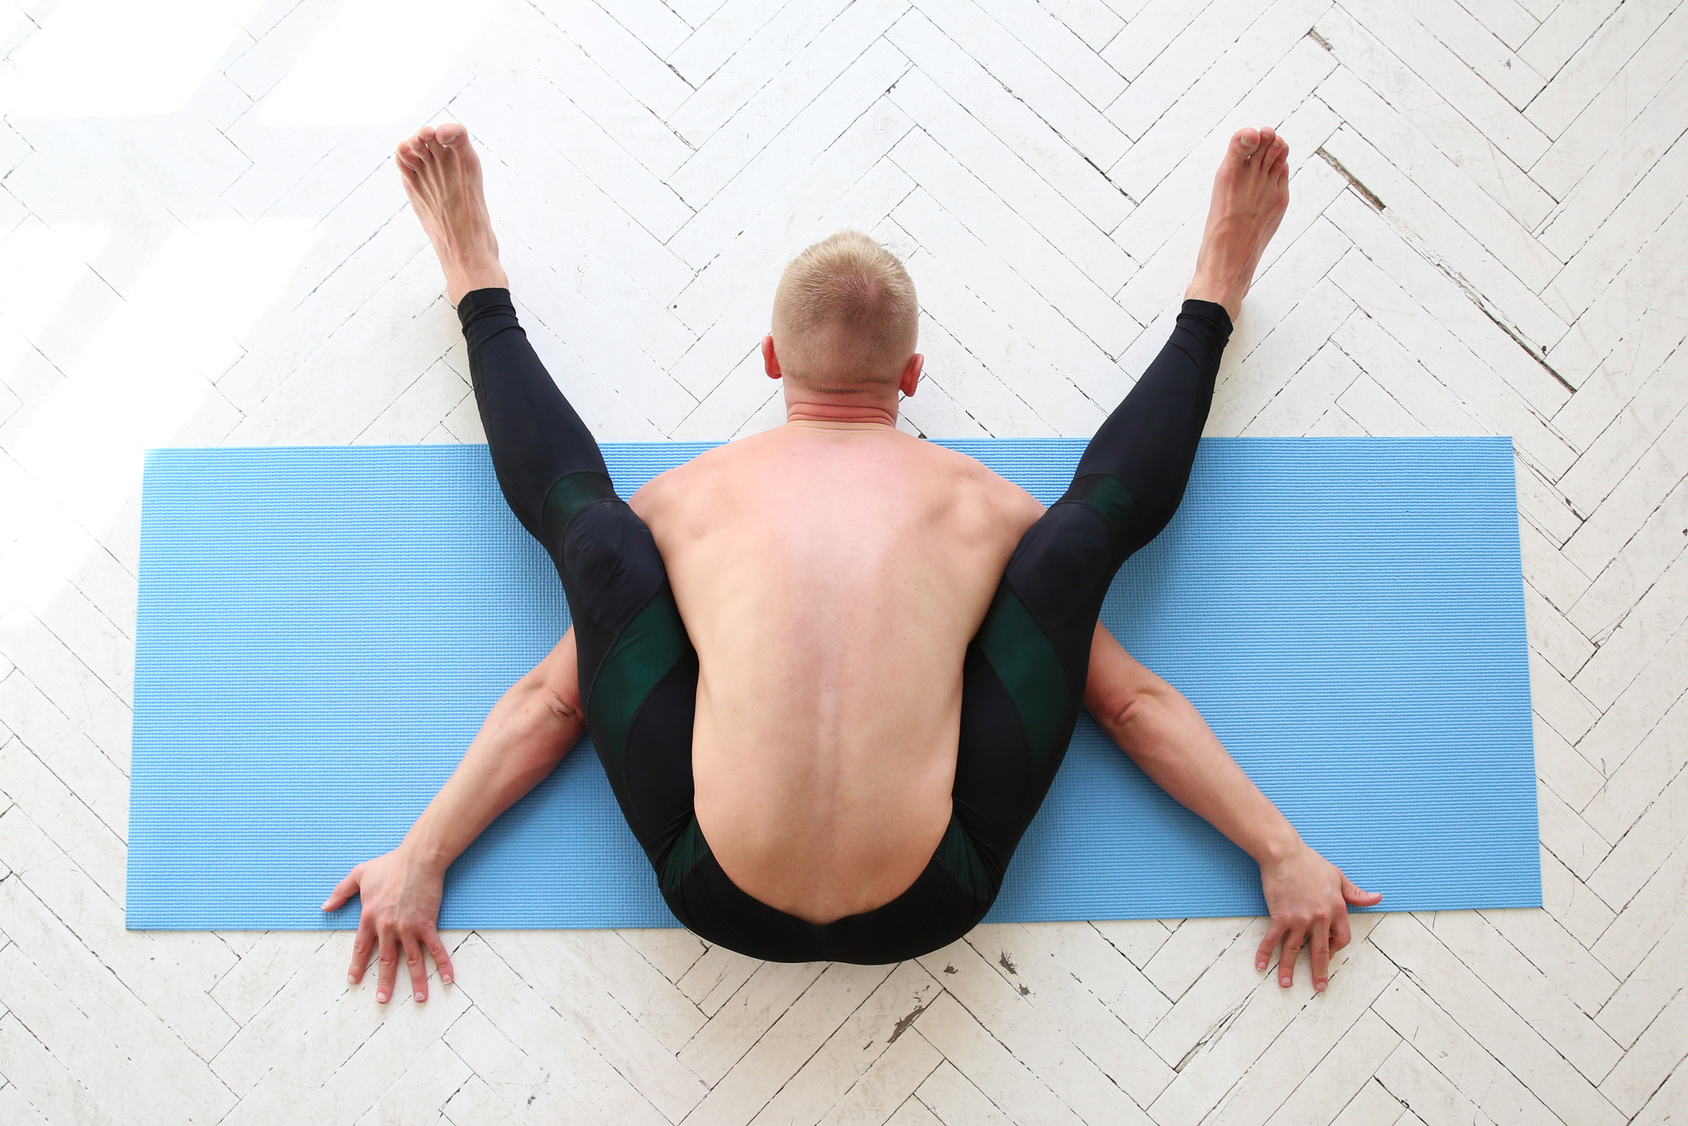 Man doing Tortoise Pose (Kurmasana) as part of the discussion of male vs. female flexibility in yoga